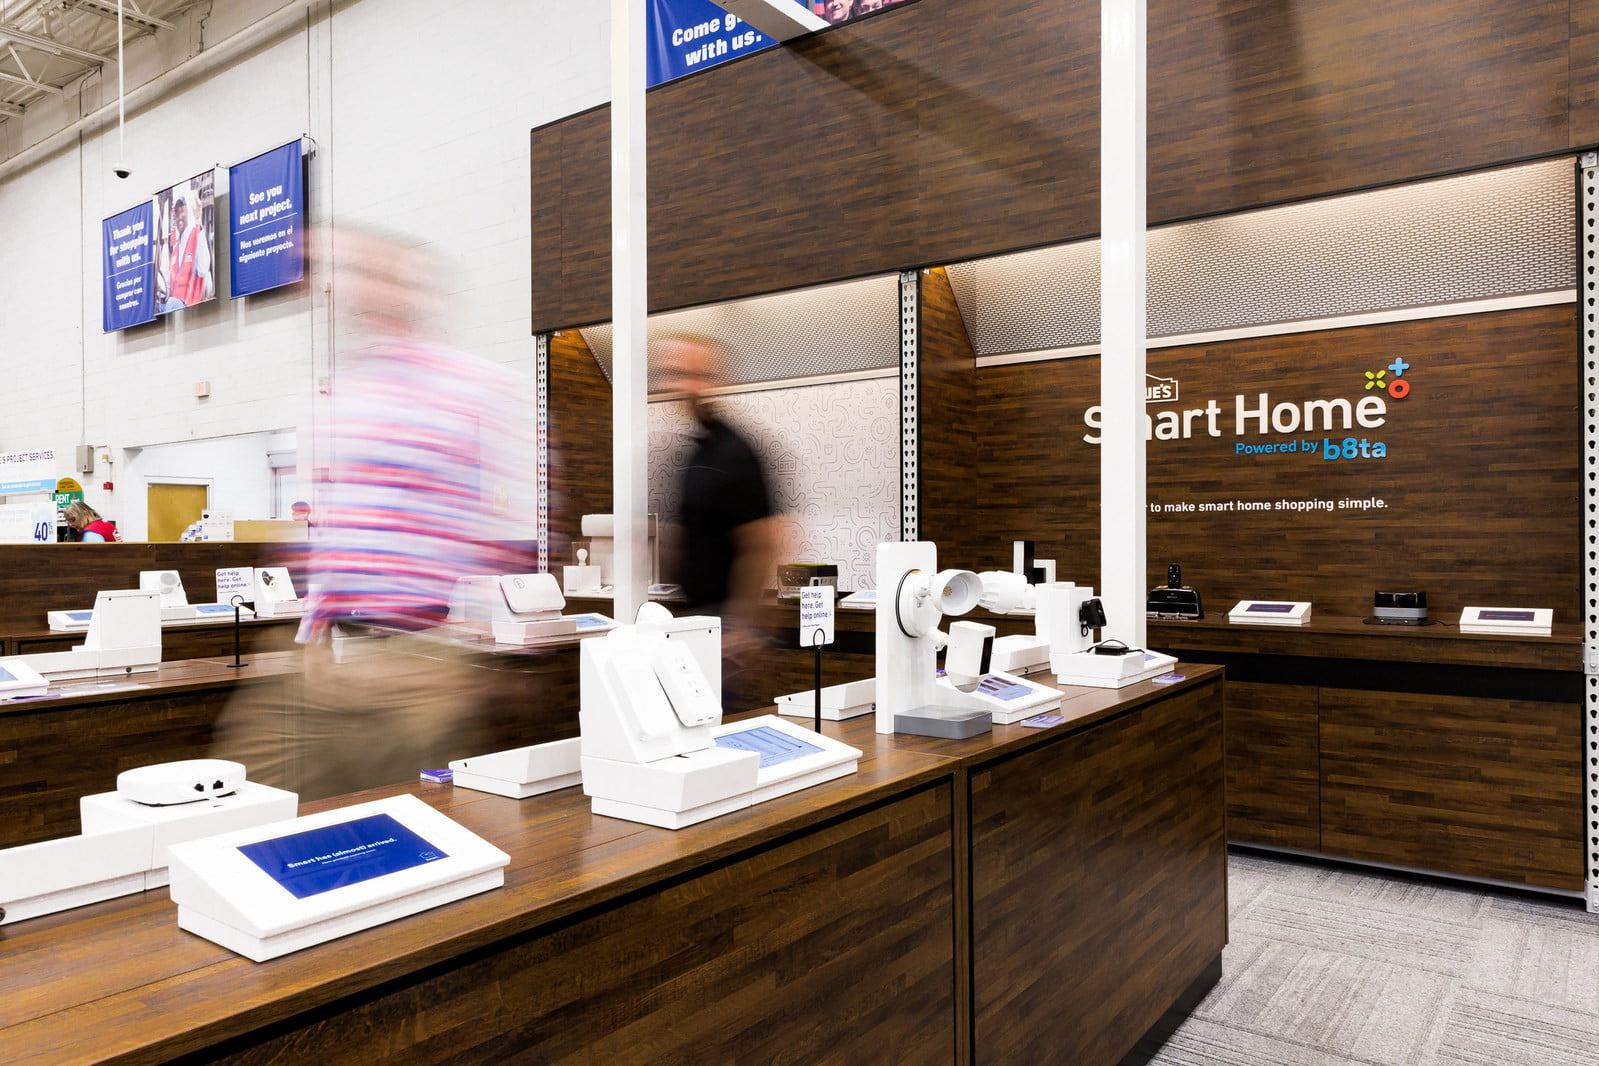 lowes smart home store b8ta powered by in aisle